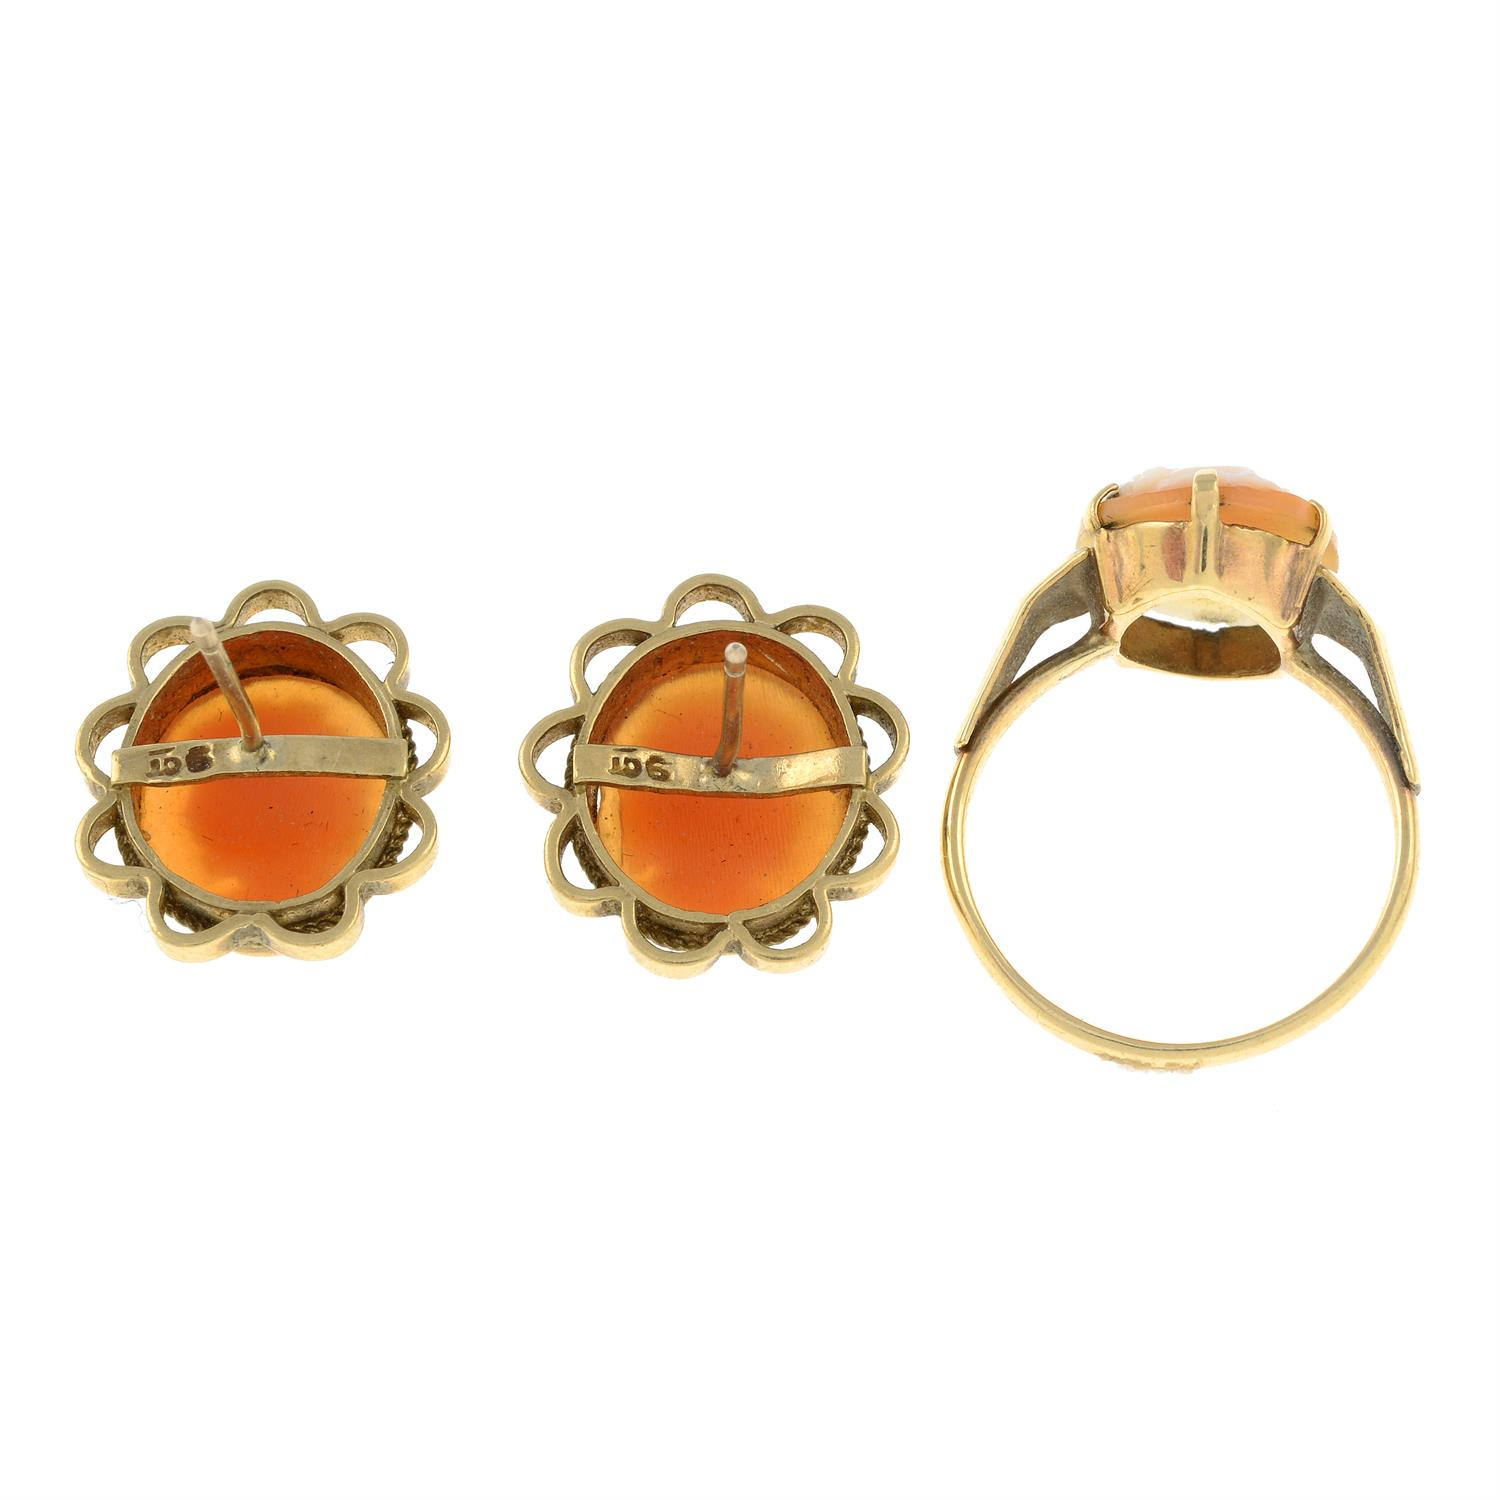 A 9ct gold shell cameo ring and stud earrings. - Image 2 of 2